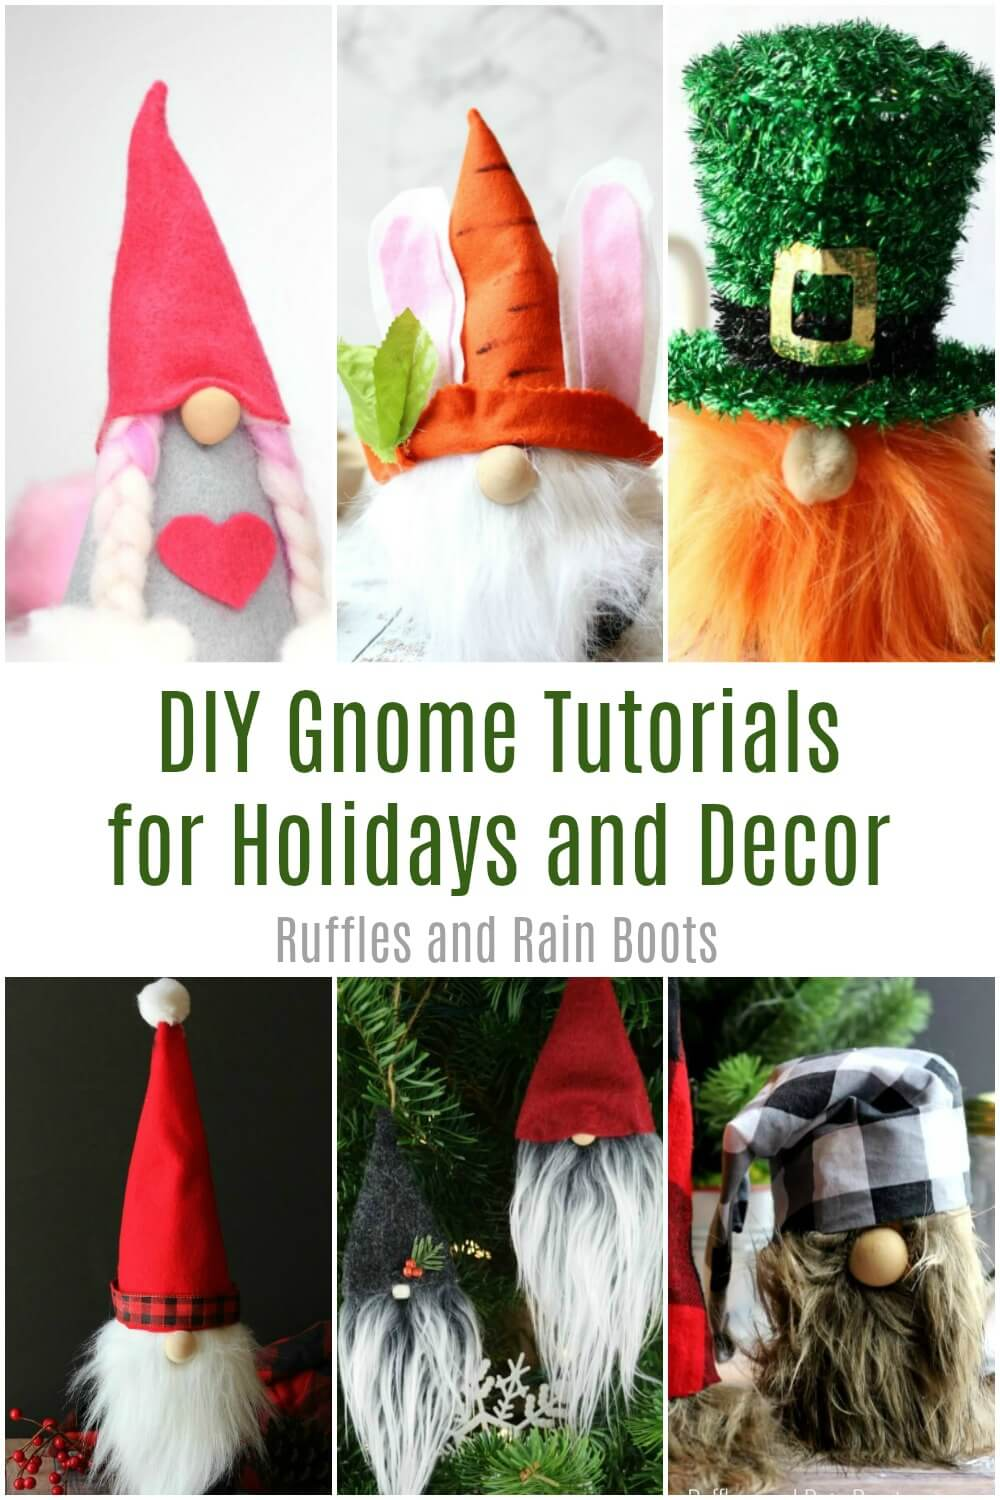 photo collage of adorable gnomes with text which reads diy gnome tutorials for holidays and decor